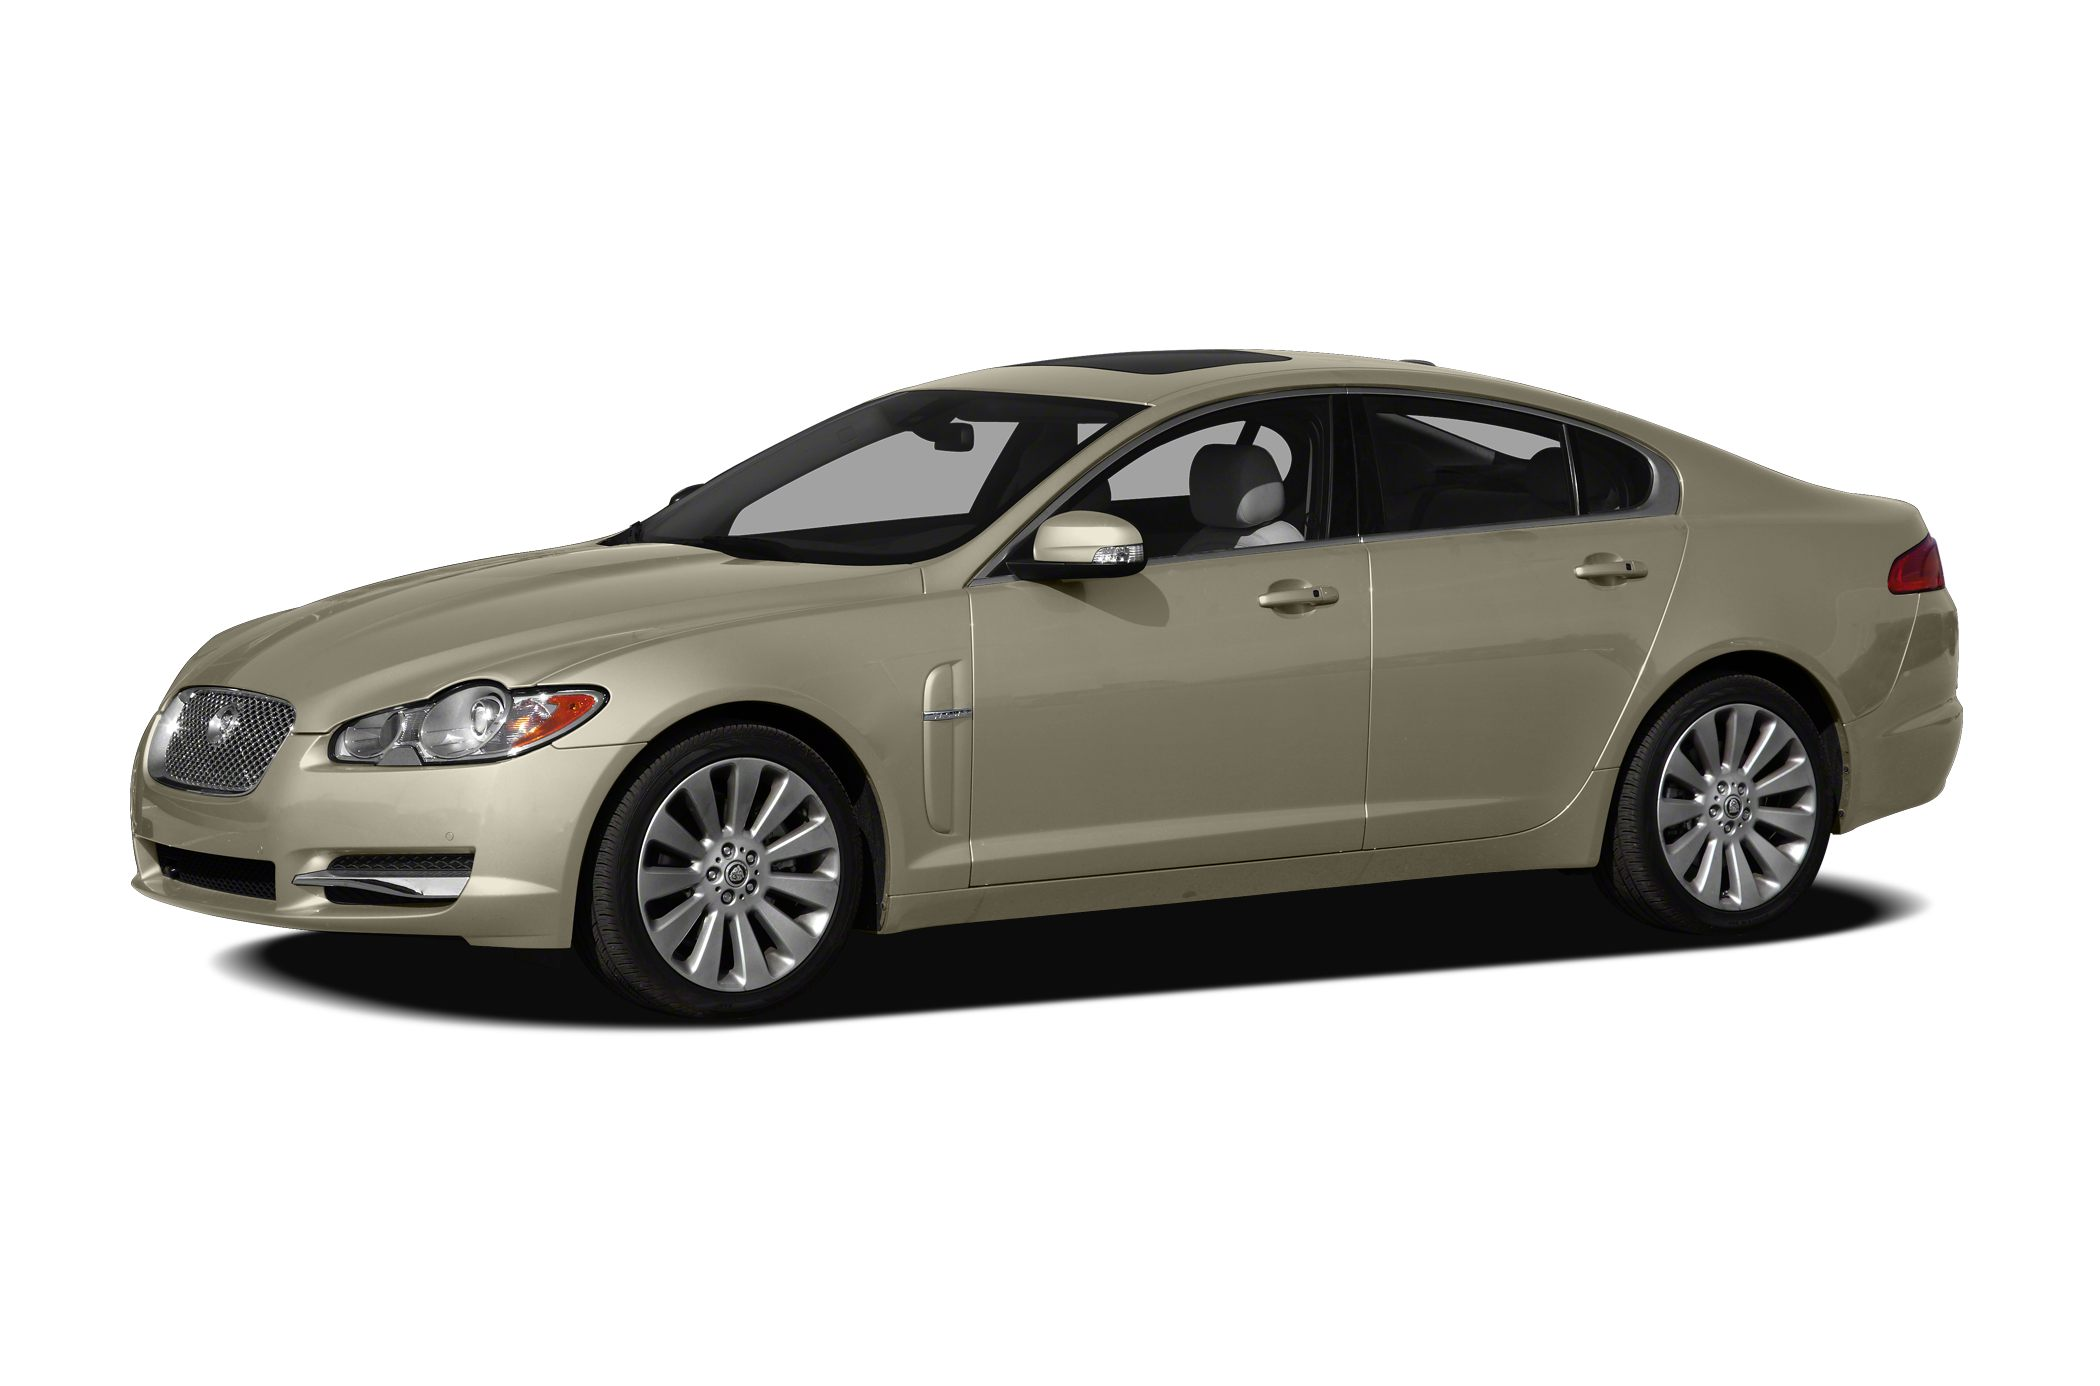 2011 Jaguar XF Supercharged Sedan for sale in Virginia Beach for $26,995 with 86,718 miles.